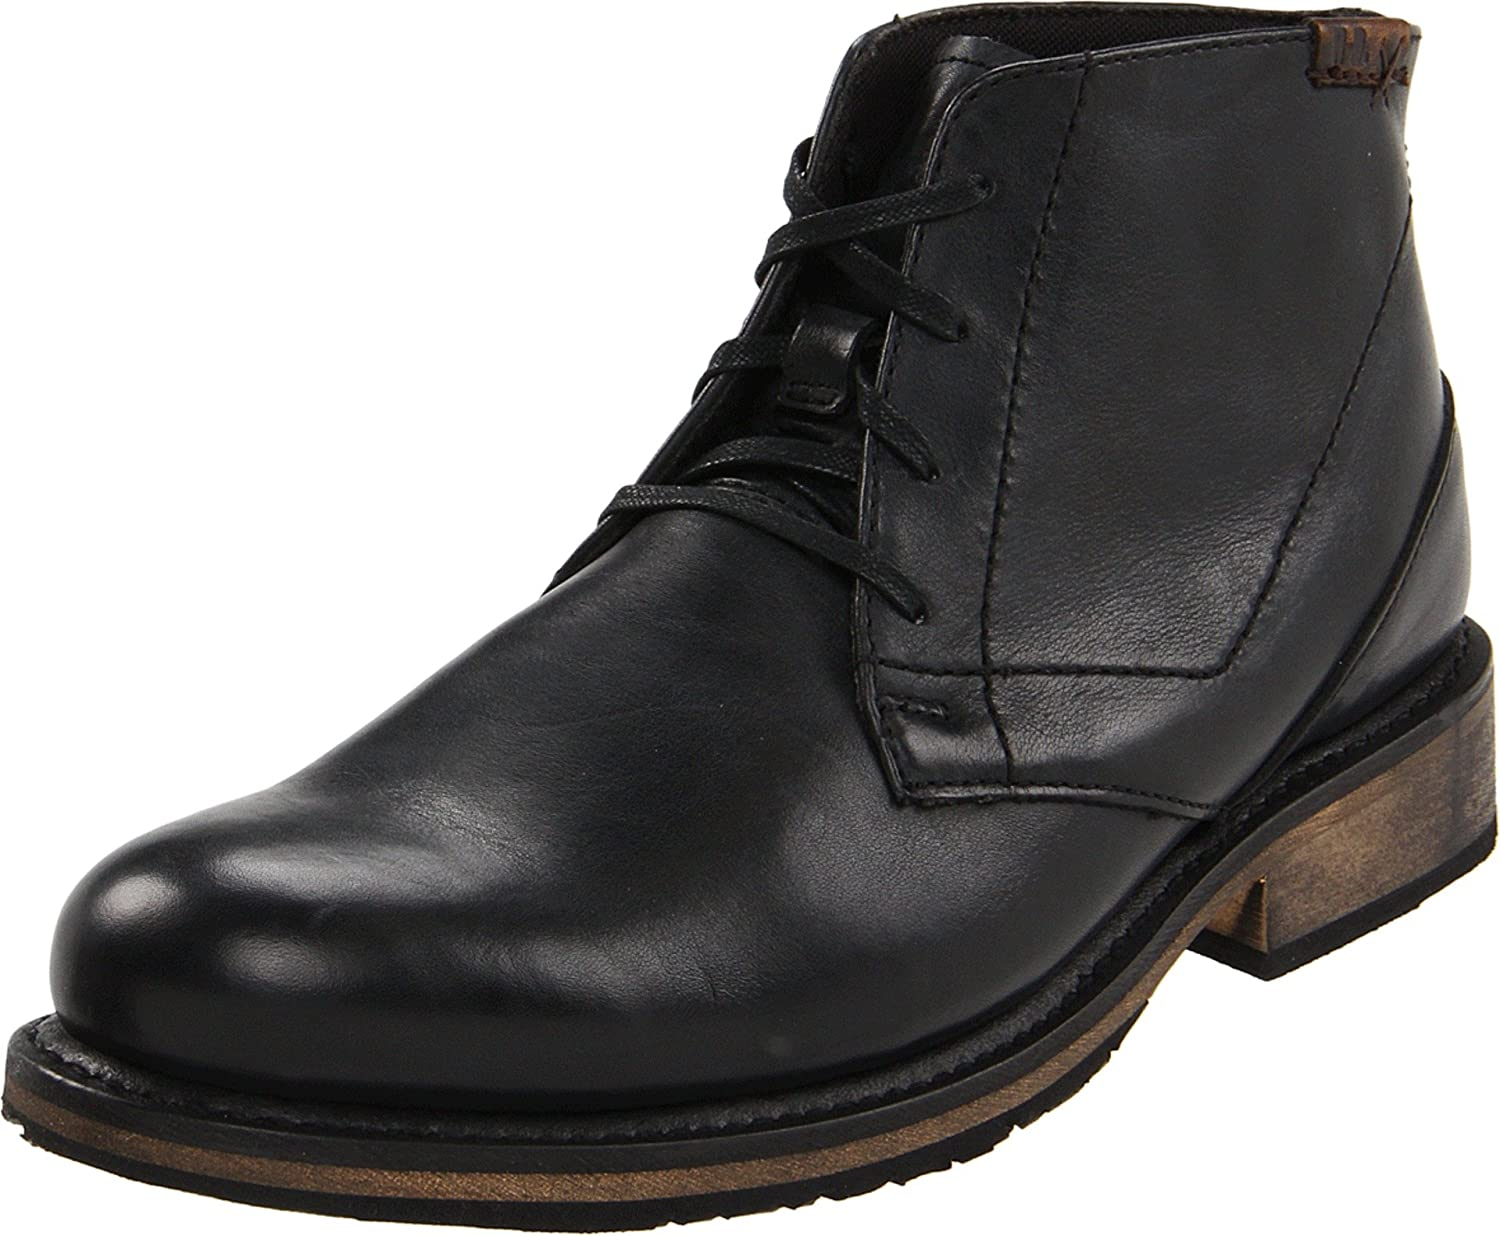 Leather Sole Boots Men Images Italian Style Fashion